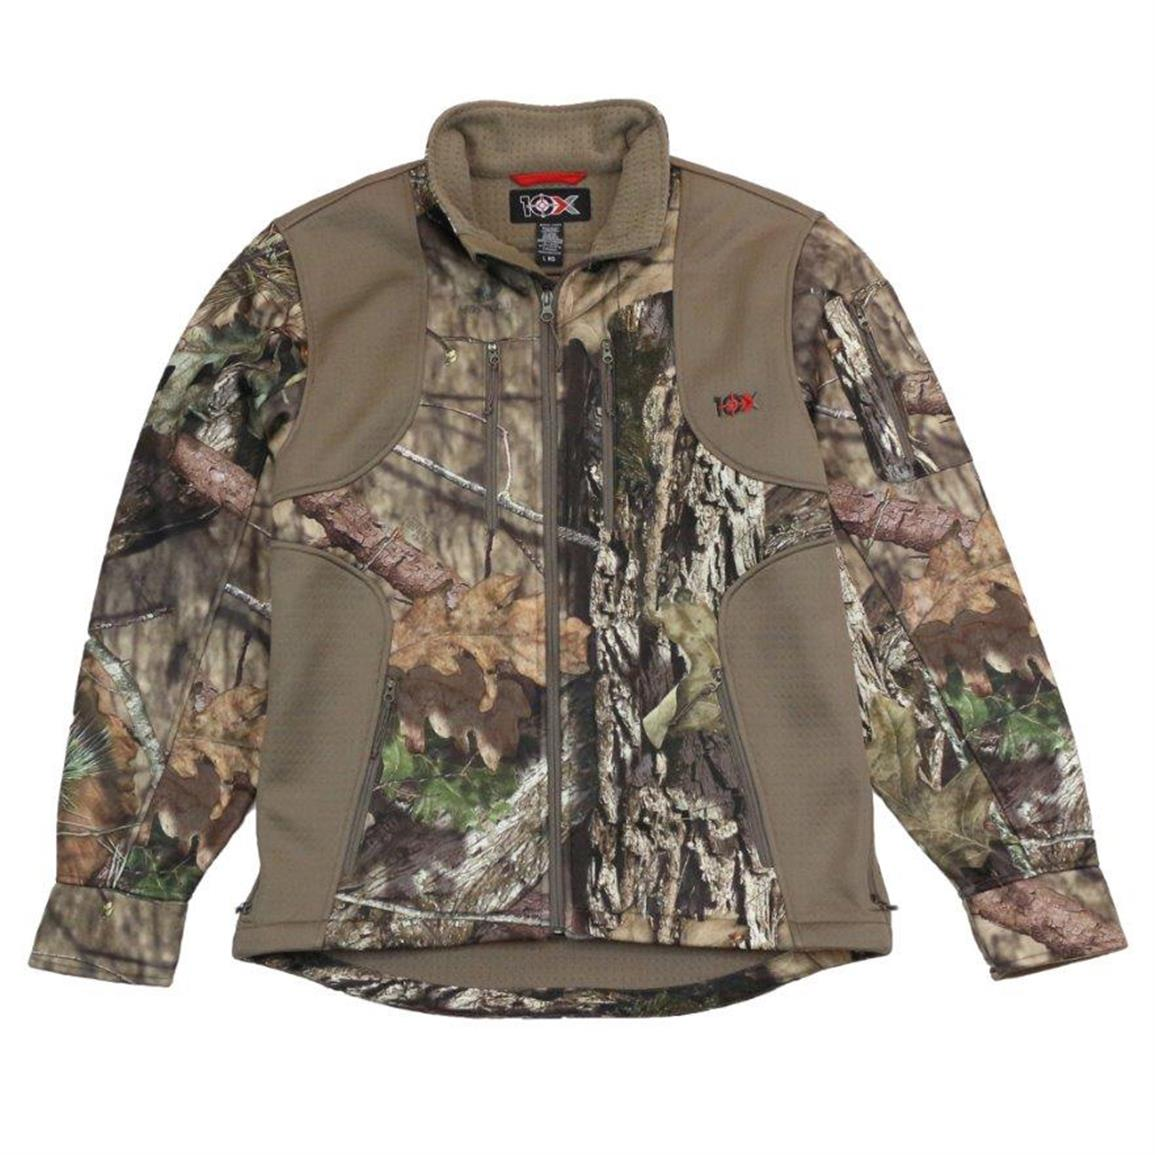 10X Men's Camo Softshell Jacket, Realtree Xtra